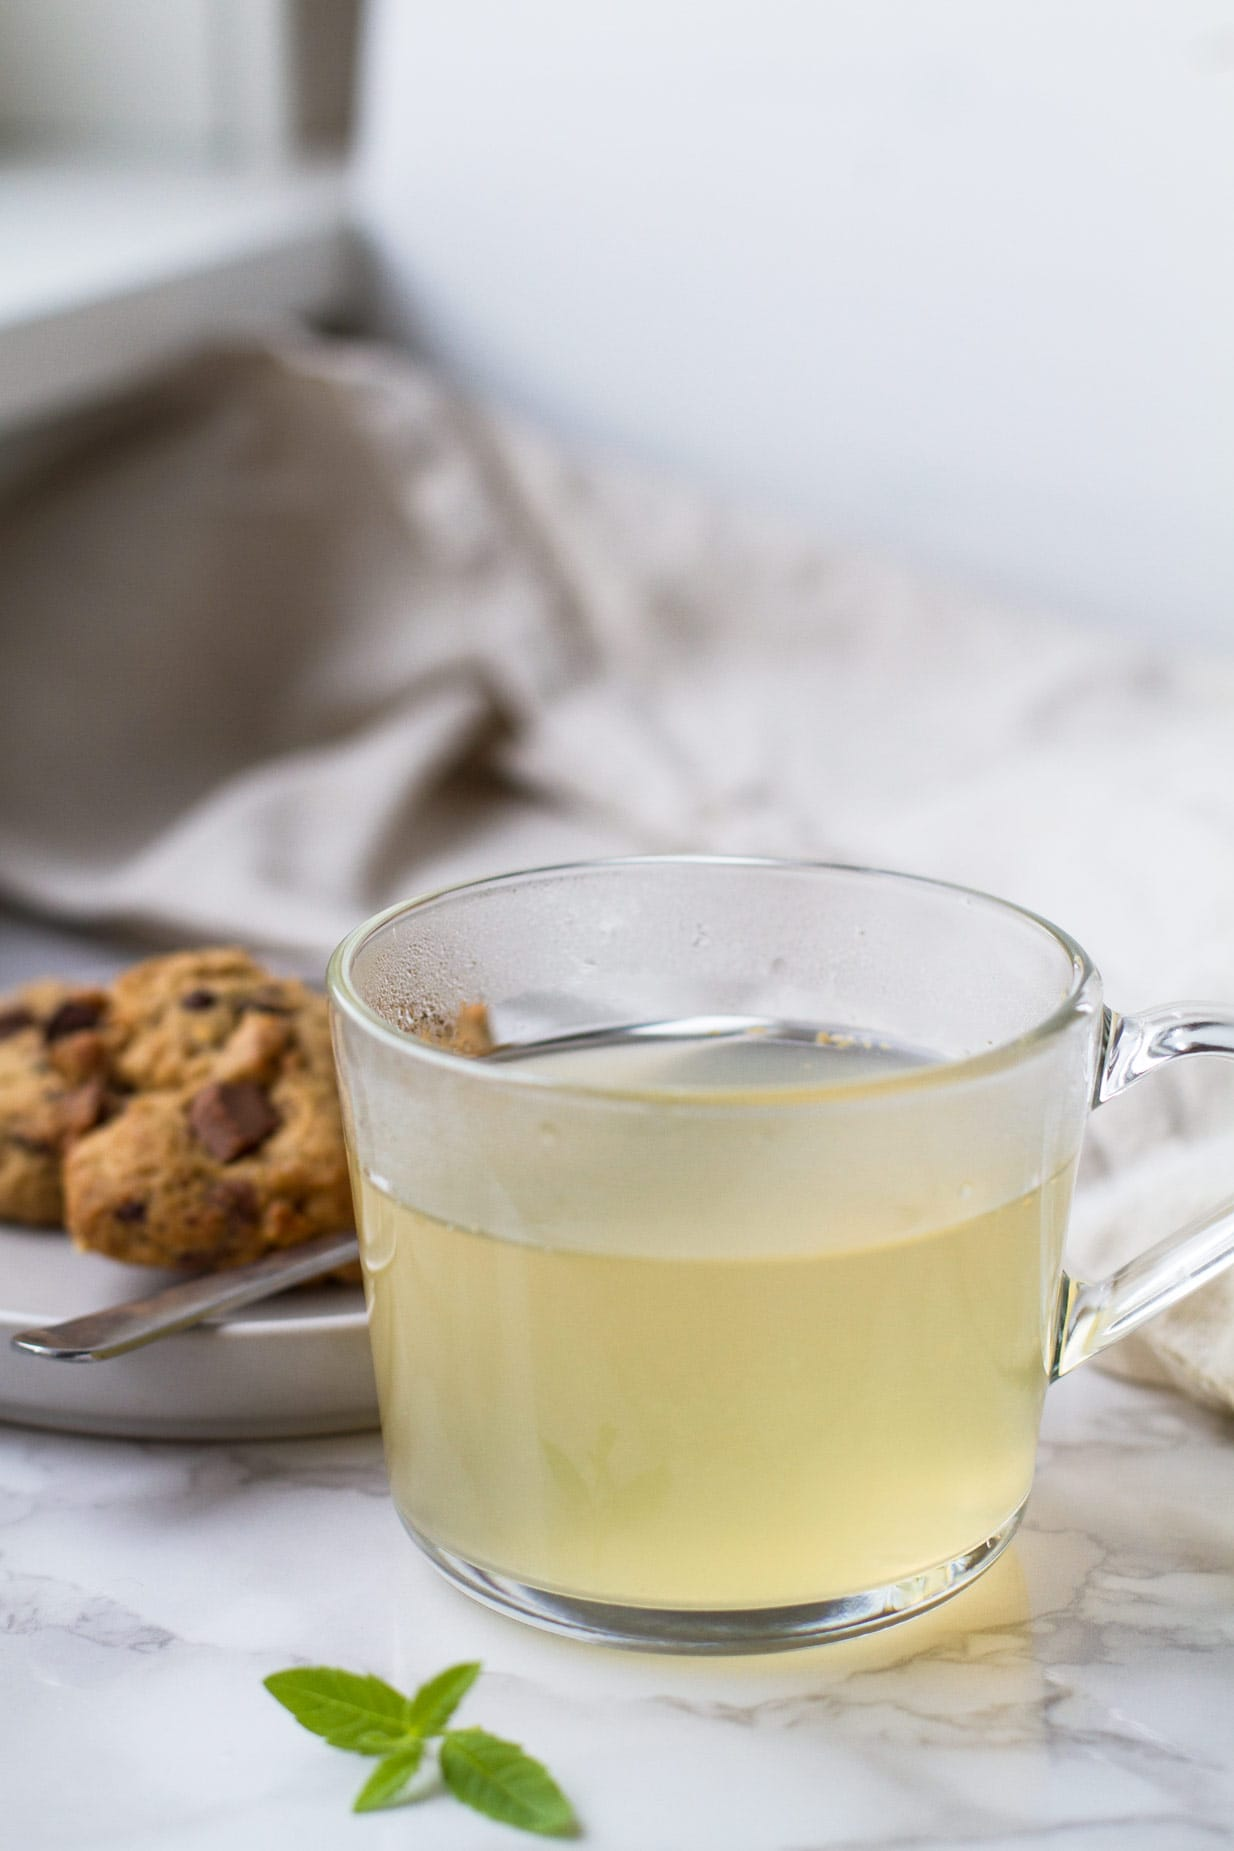 Clear mug with a pale yellow drink. Cookies in the background.